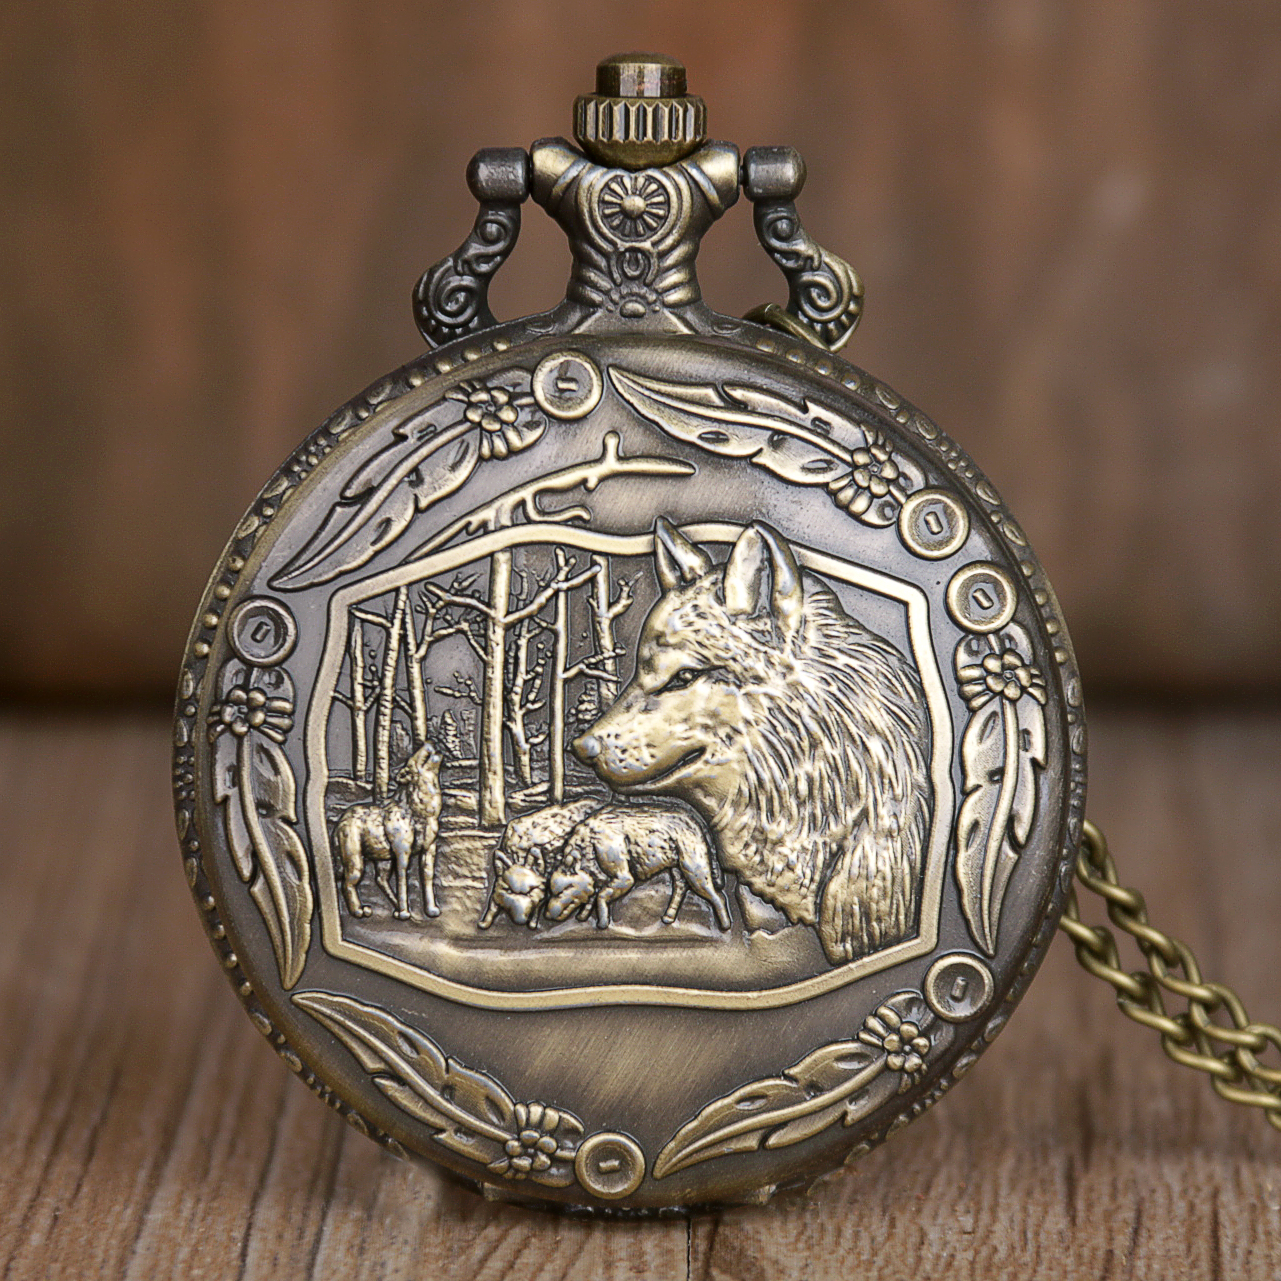 Quartz Pocket Watch New Arrival Wolf Game Of Thrones Retro Bronze Color Men Women Pendant Necklace Jewelry Gifts Drop Shipping